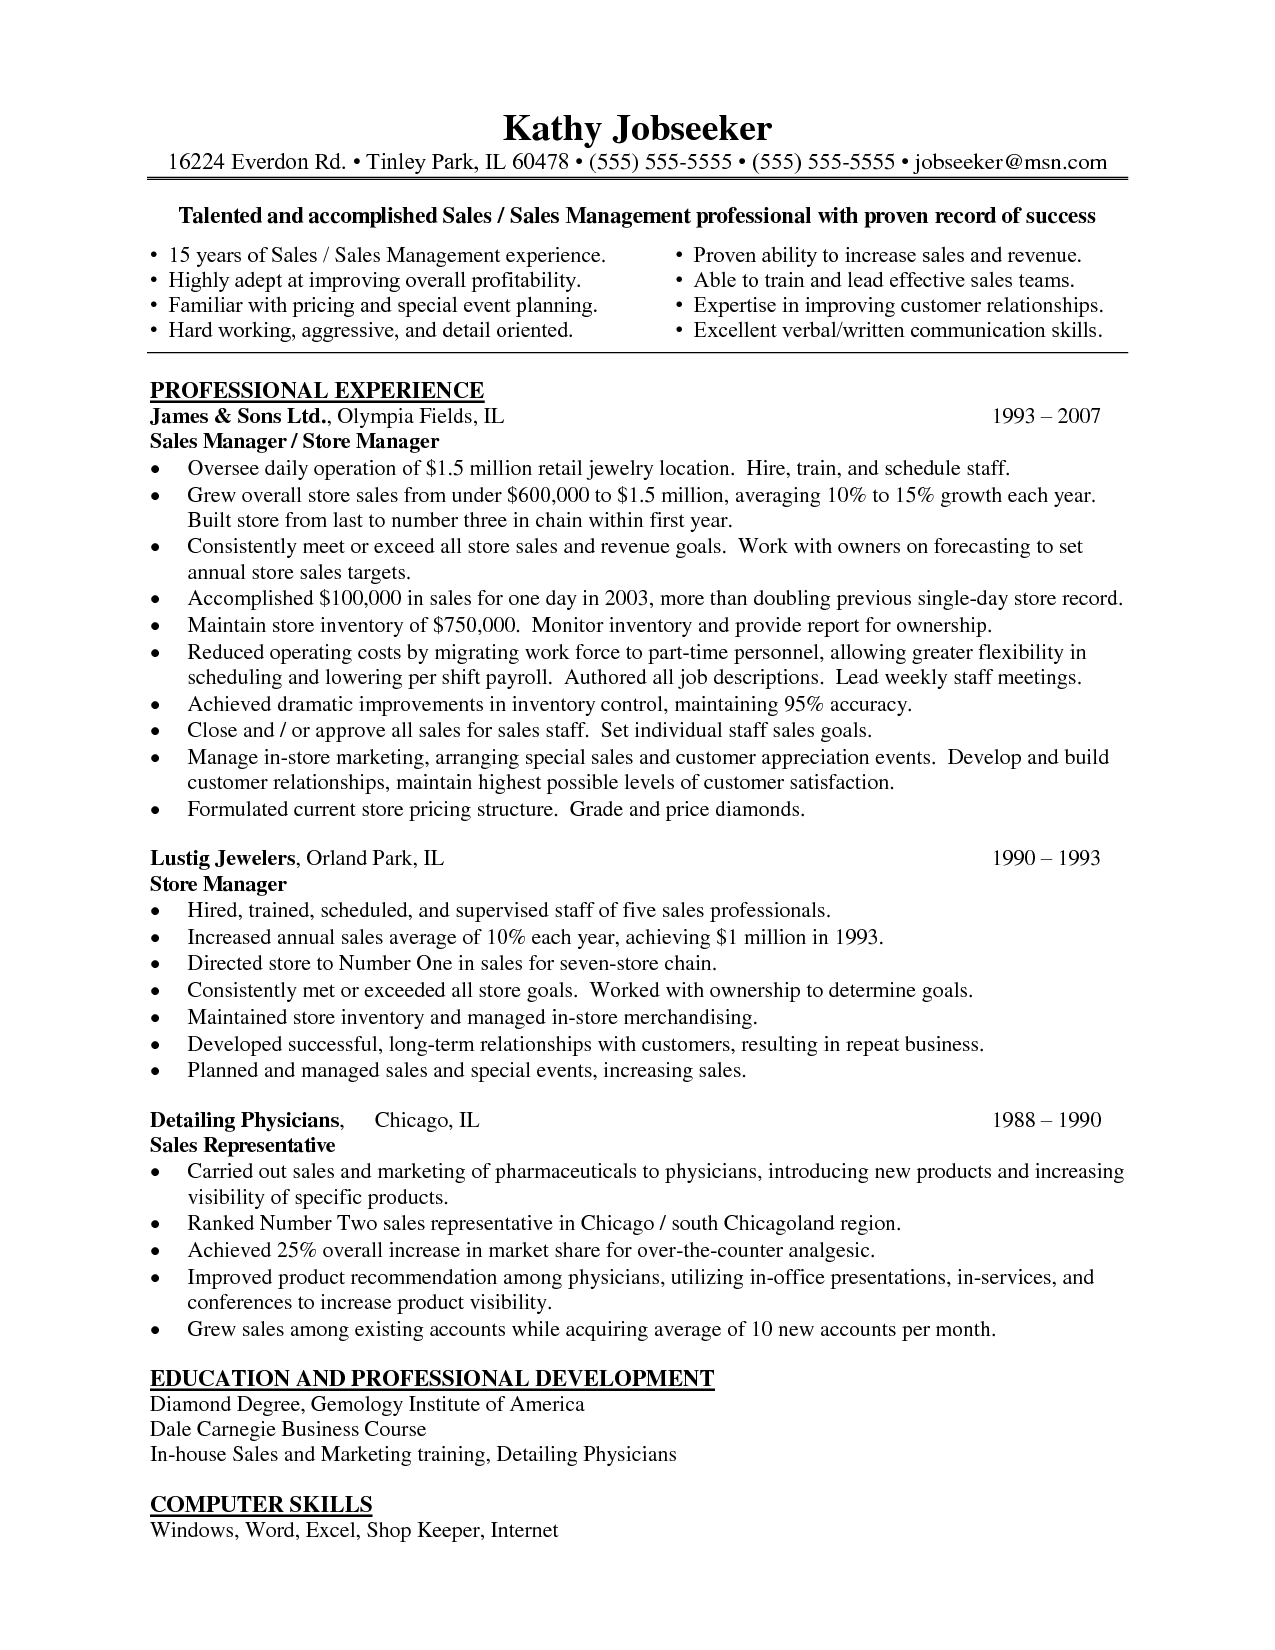 Retail Resume Template Resume Examples For Retail Store Manager  Sample Cover Letter For